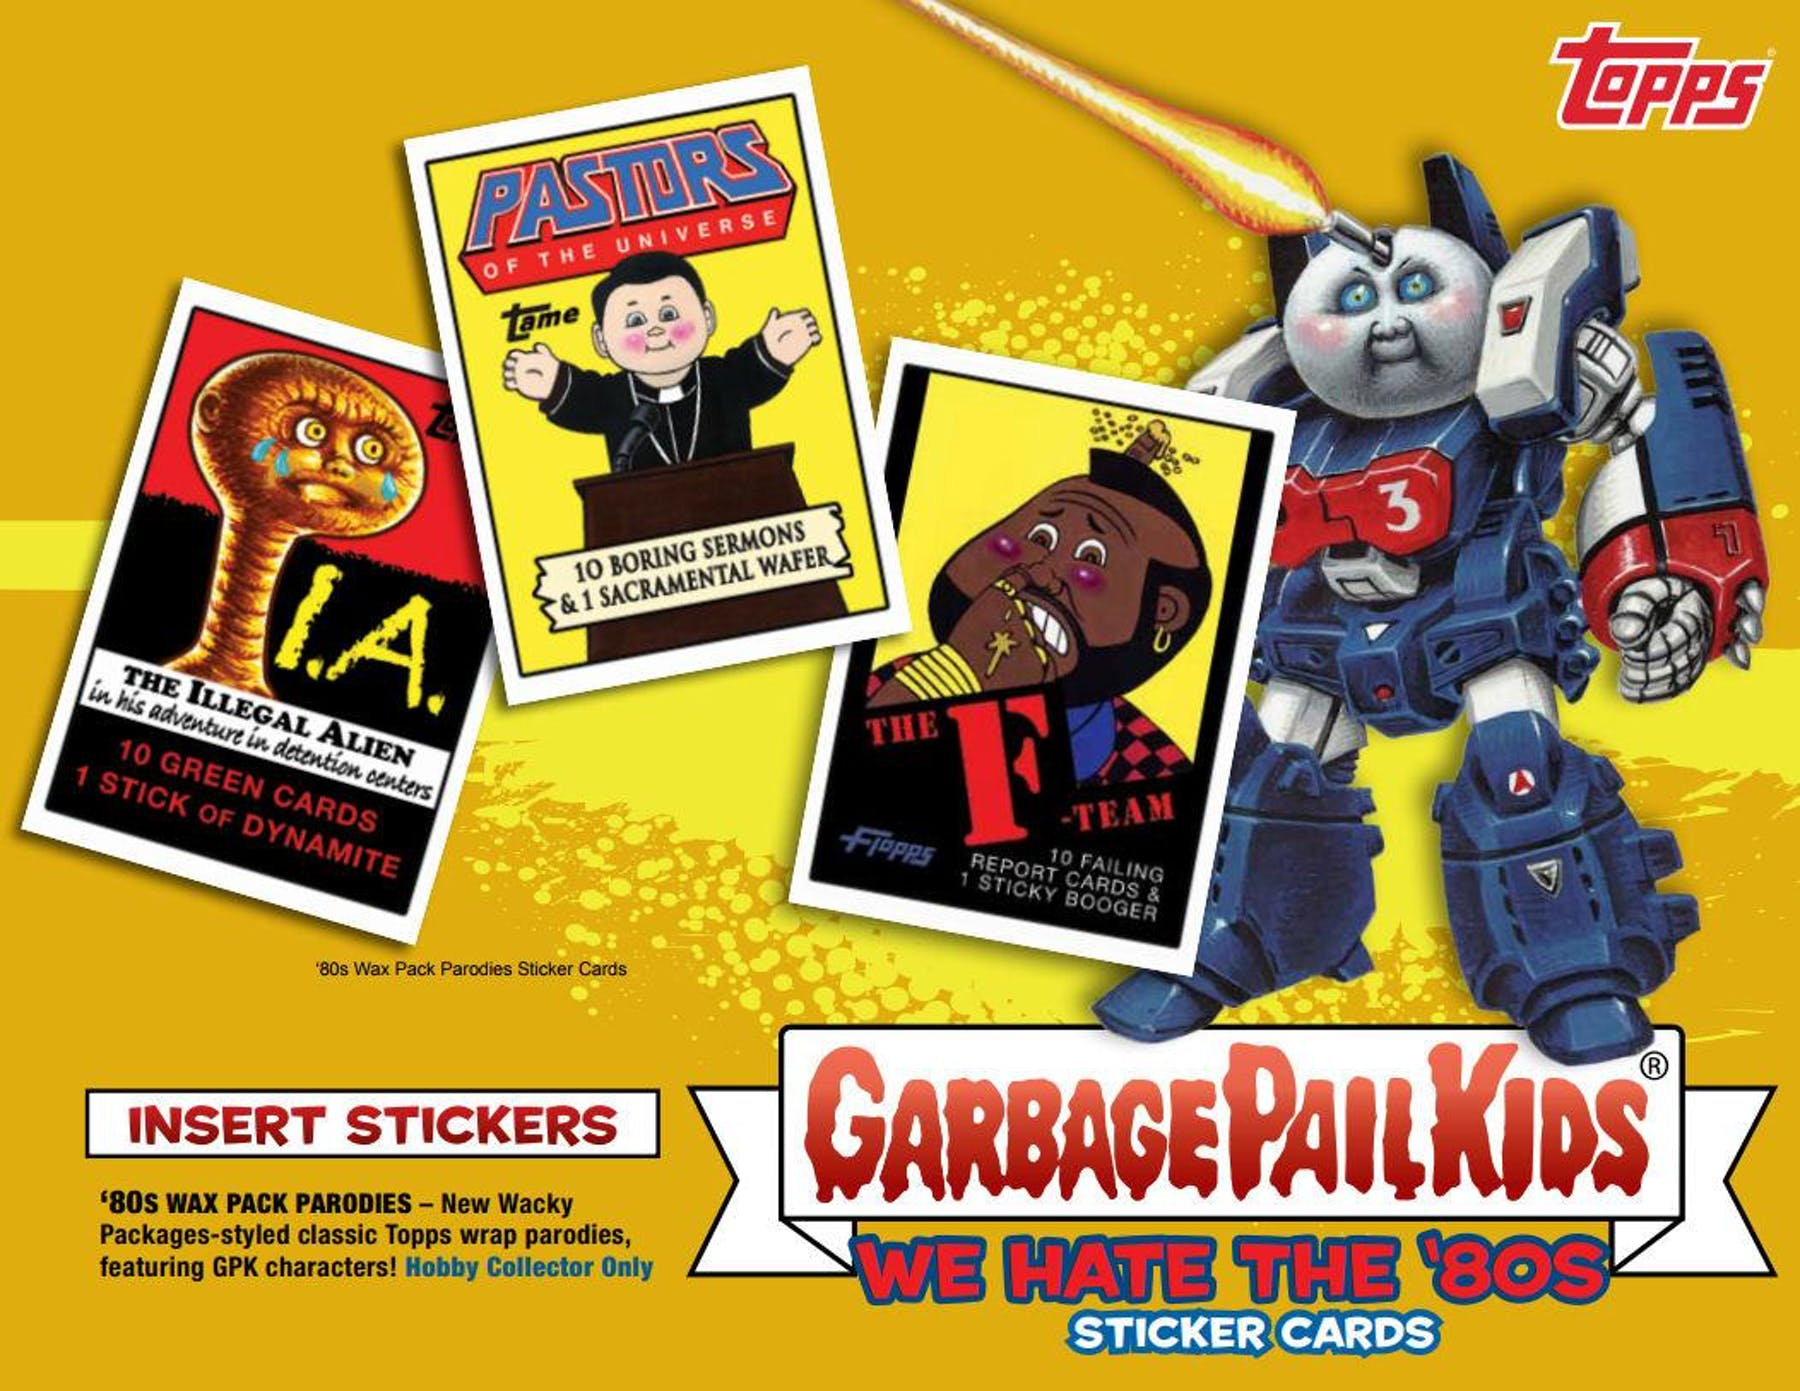 423466cafba ... Garbage Pail Kids Series 1 We Hate The 80 s Collector Edition Box  (Topps 2018)